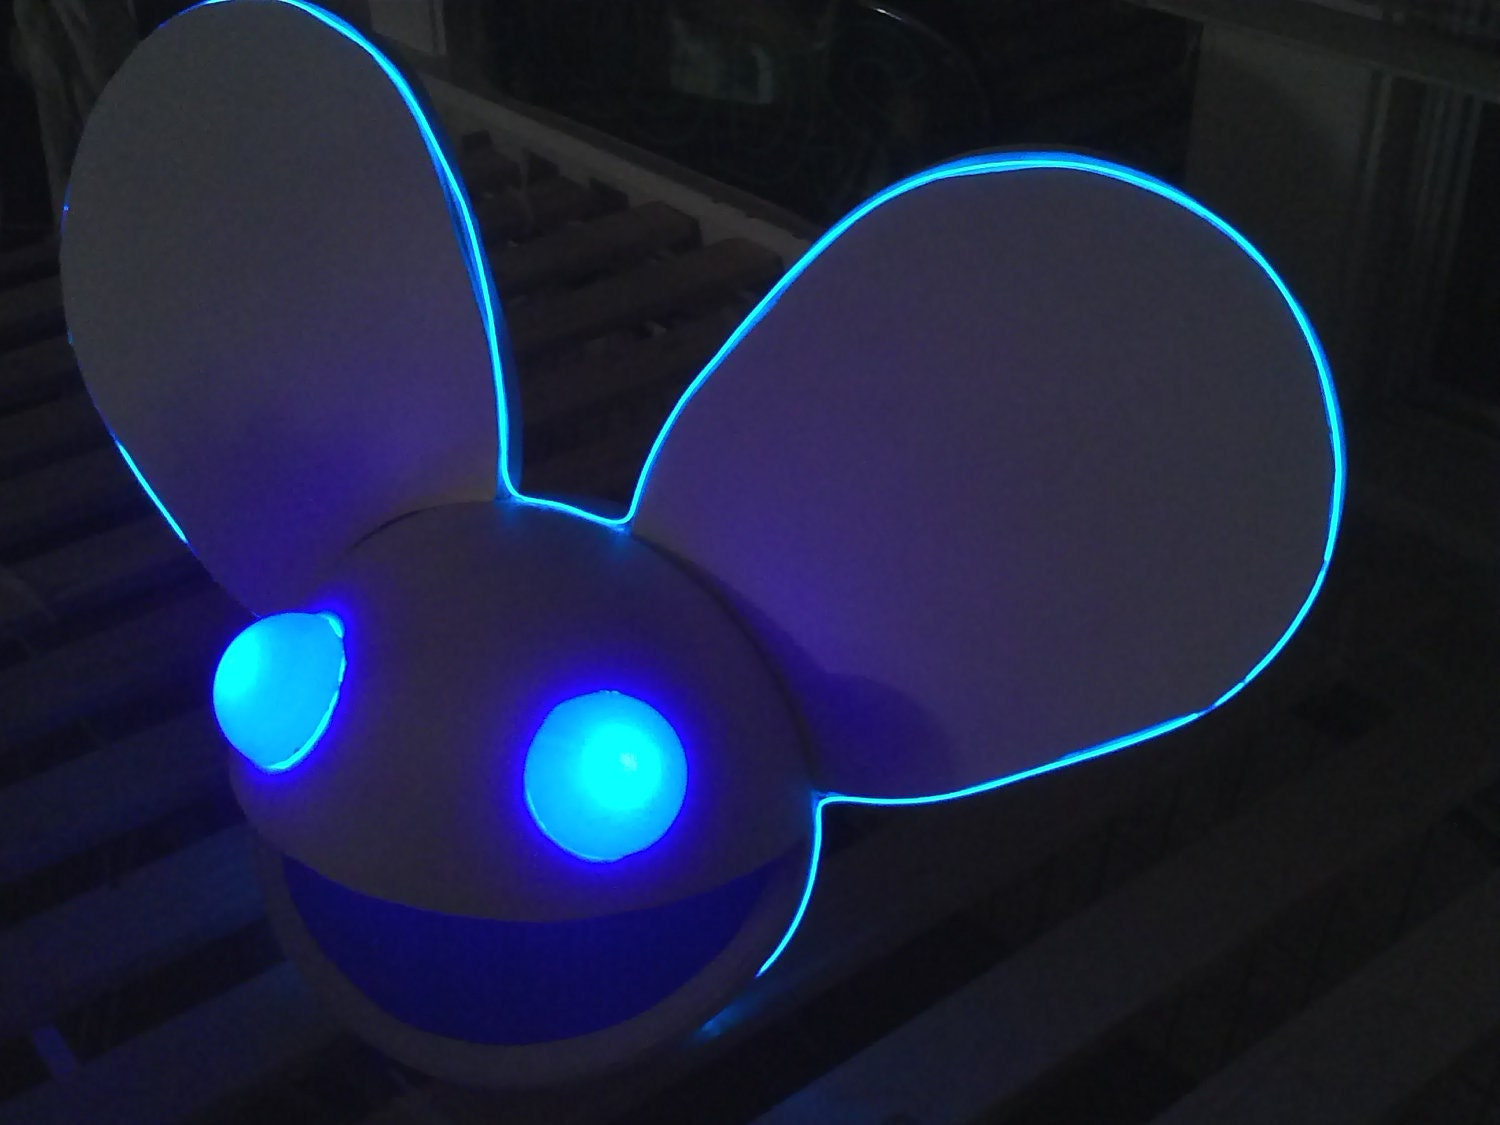 deadmau5 head inside - photo #29